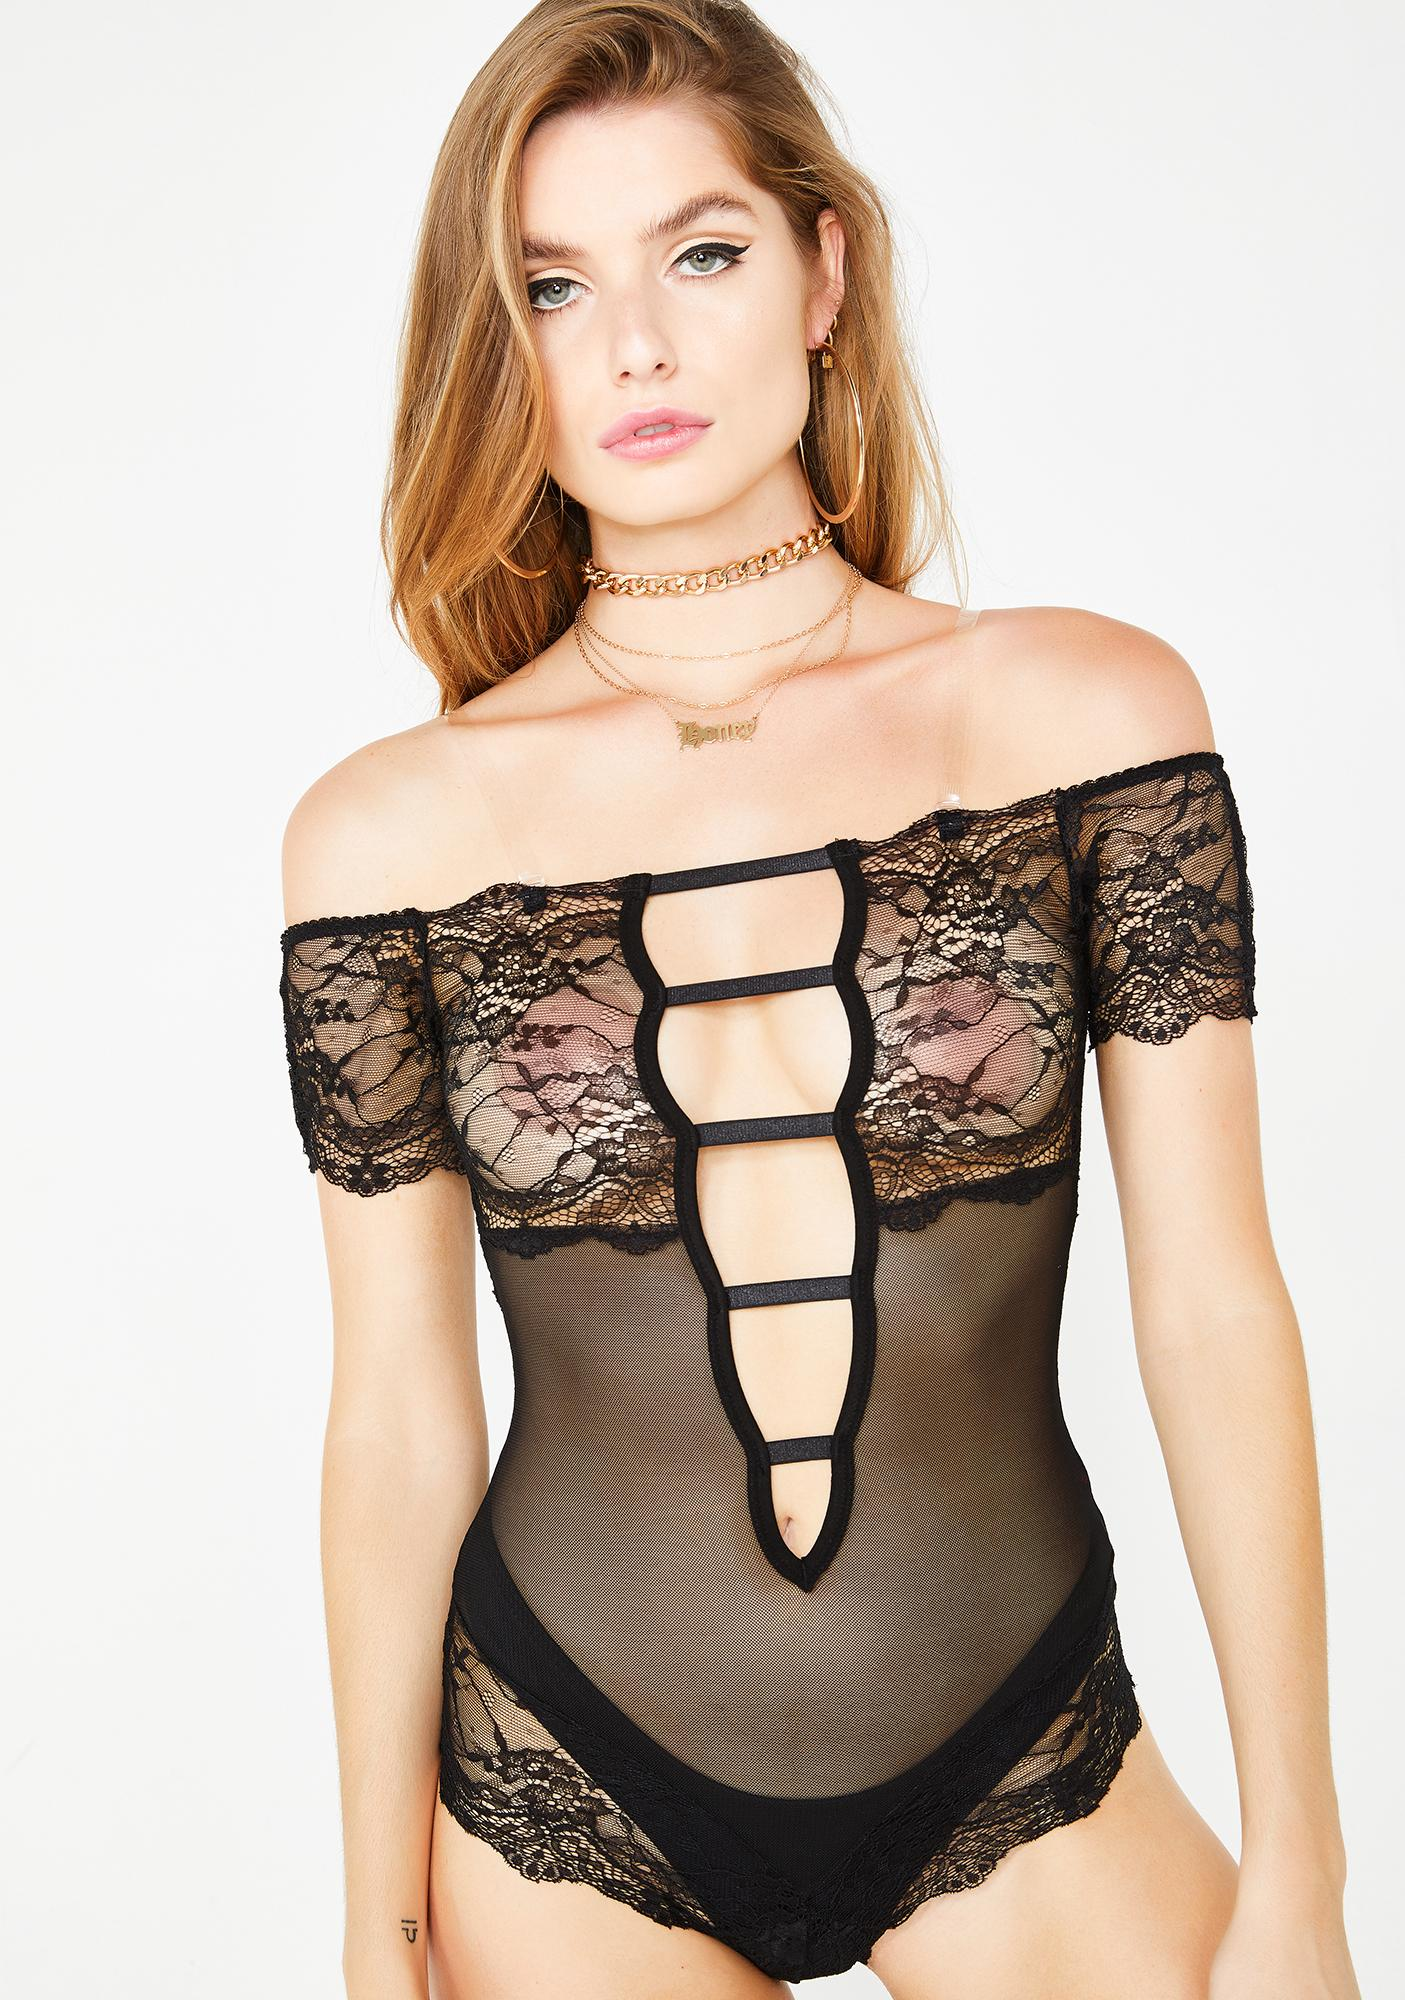 French Kiss Sheer Teddy